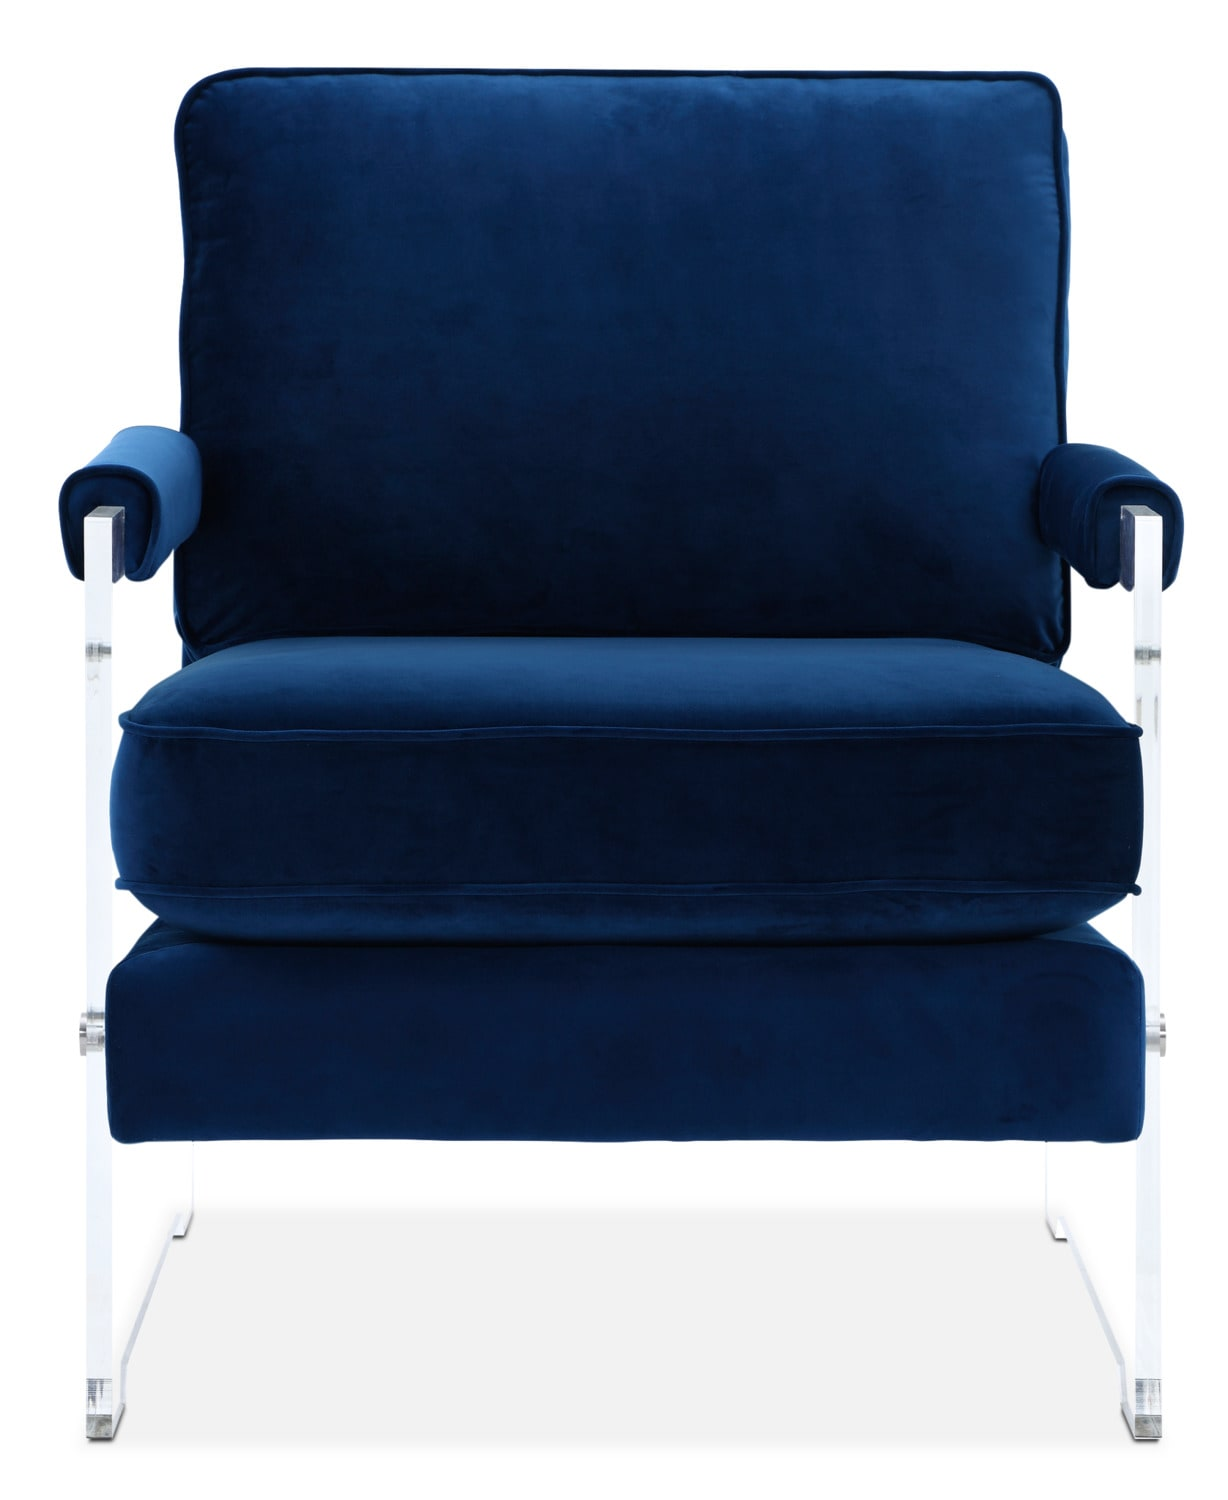 tot tutors focus comfy reading chair with book storage blue